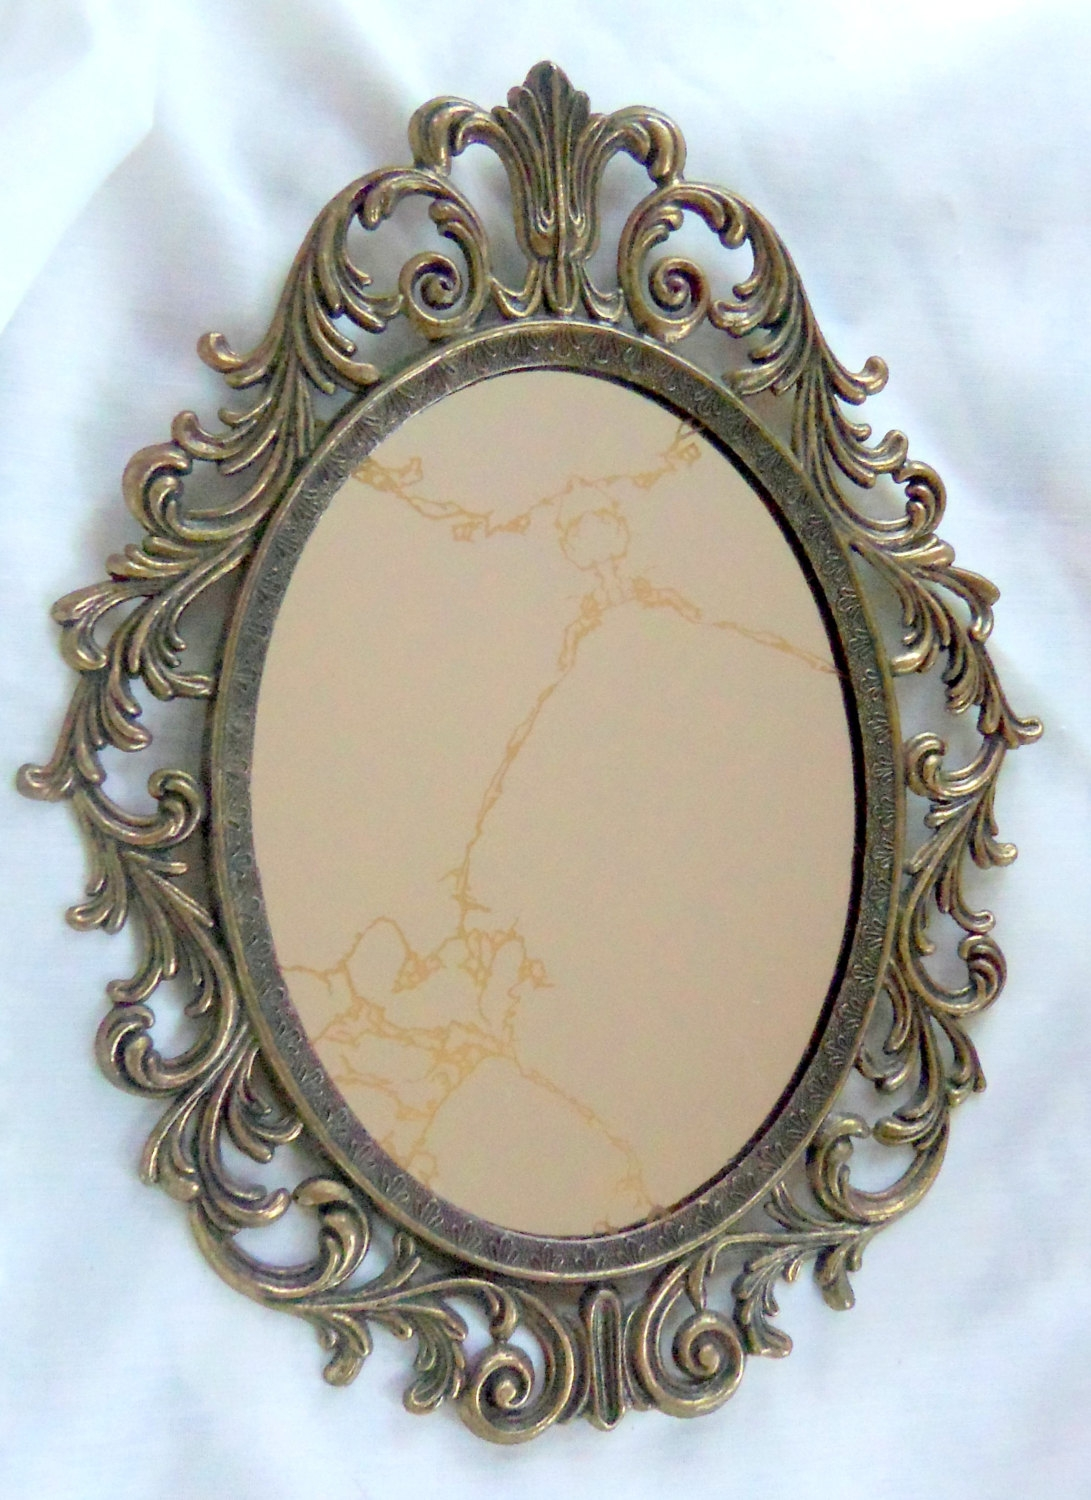 Singular Antiqueirrors Photos Conceptirror Interior4you For Sale With Regard To Vintage Mirrors Cheap (Image 13 of 15)